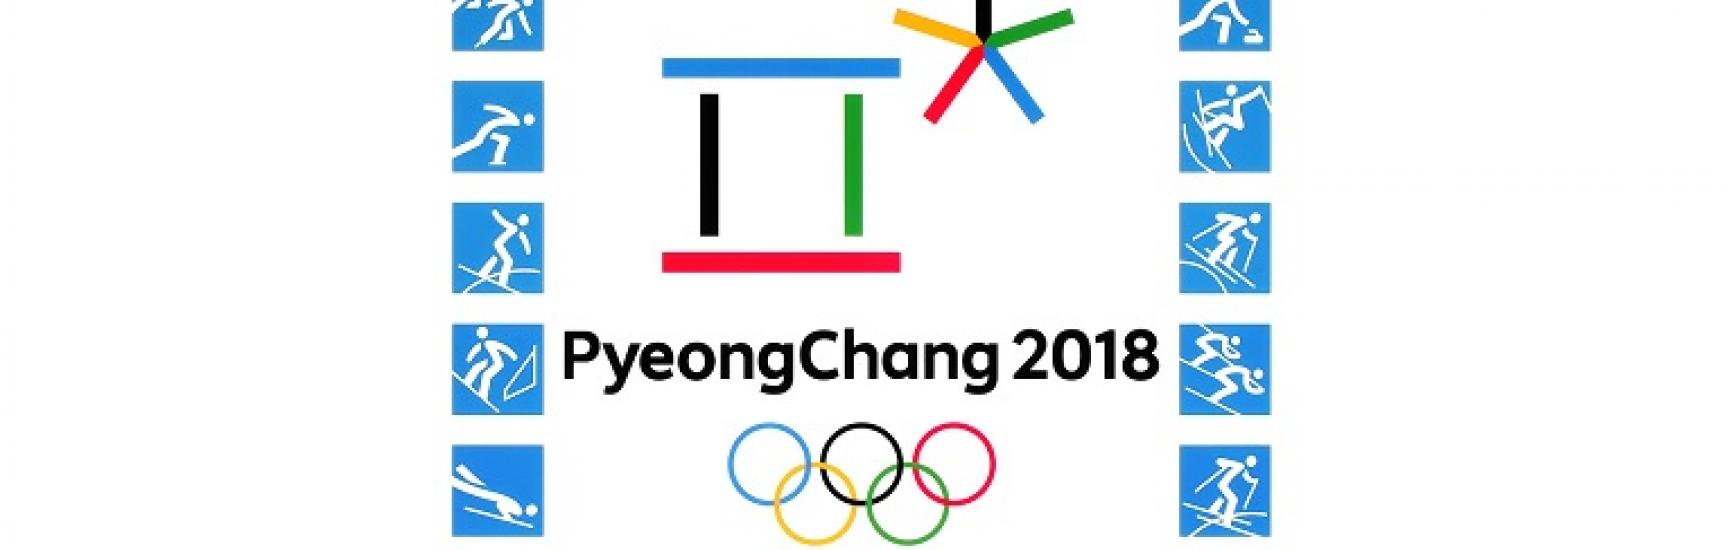 Insuring the Olympics: 3 Things to Know About PyeongChang 2018